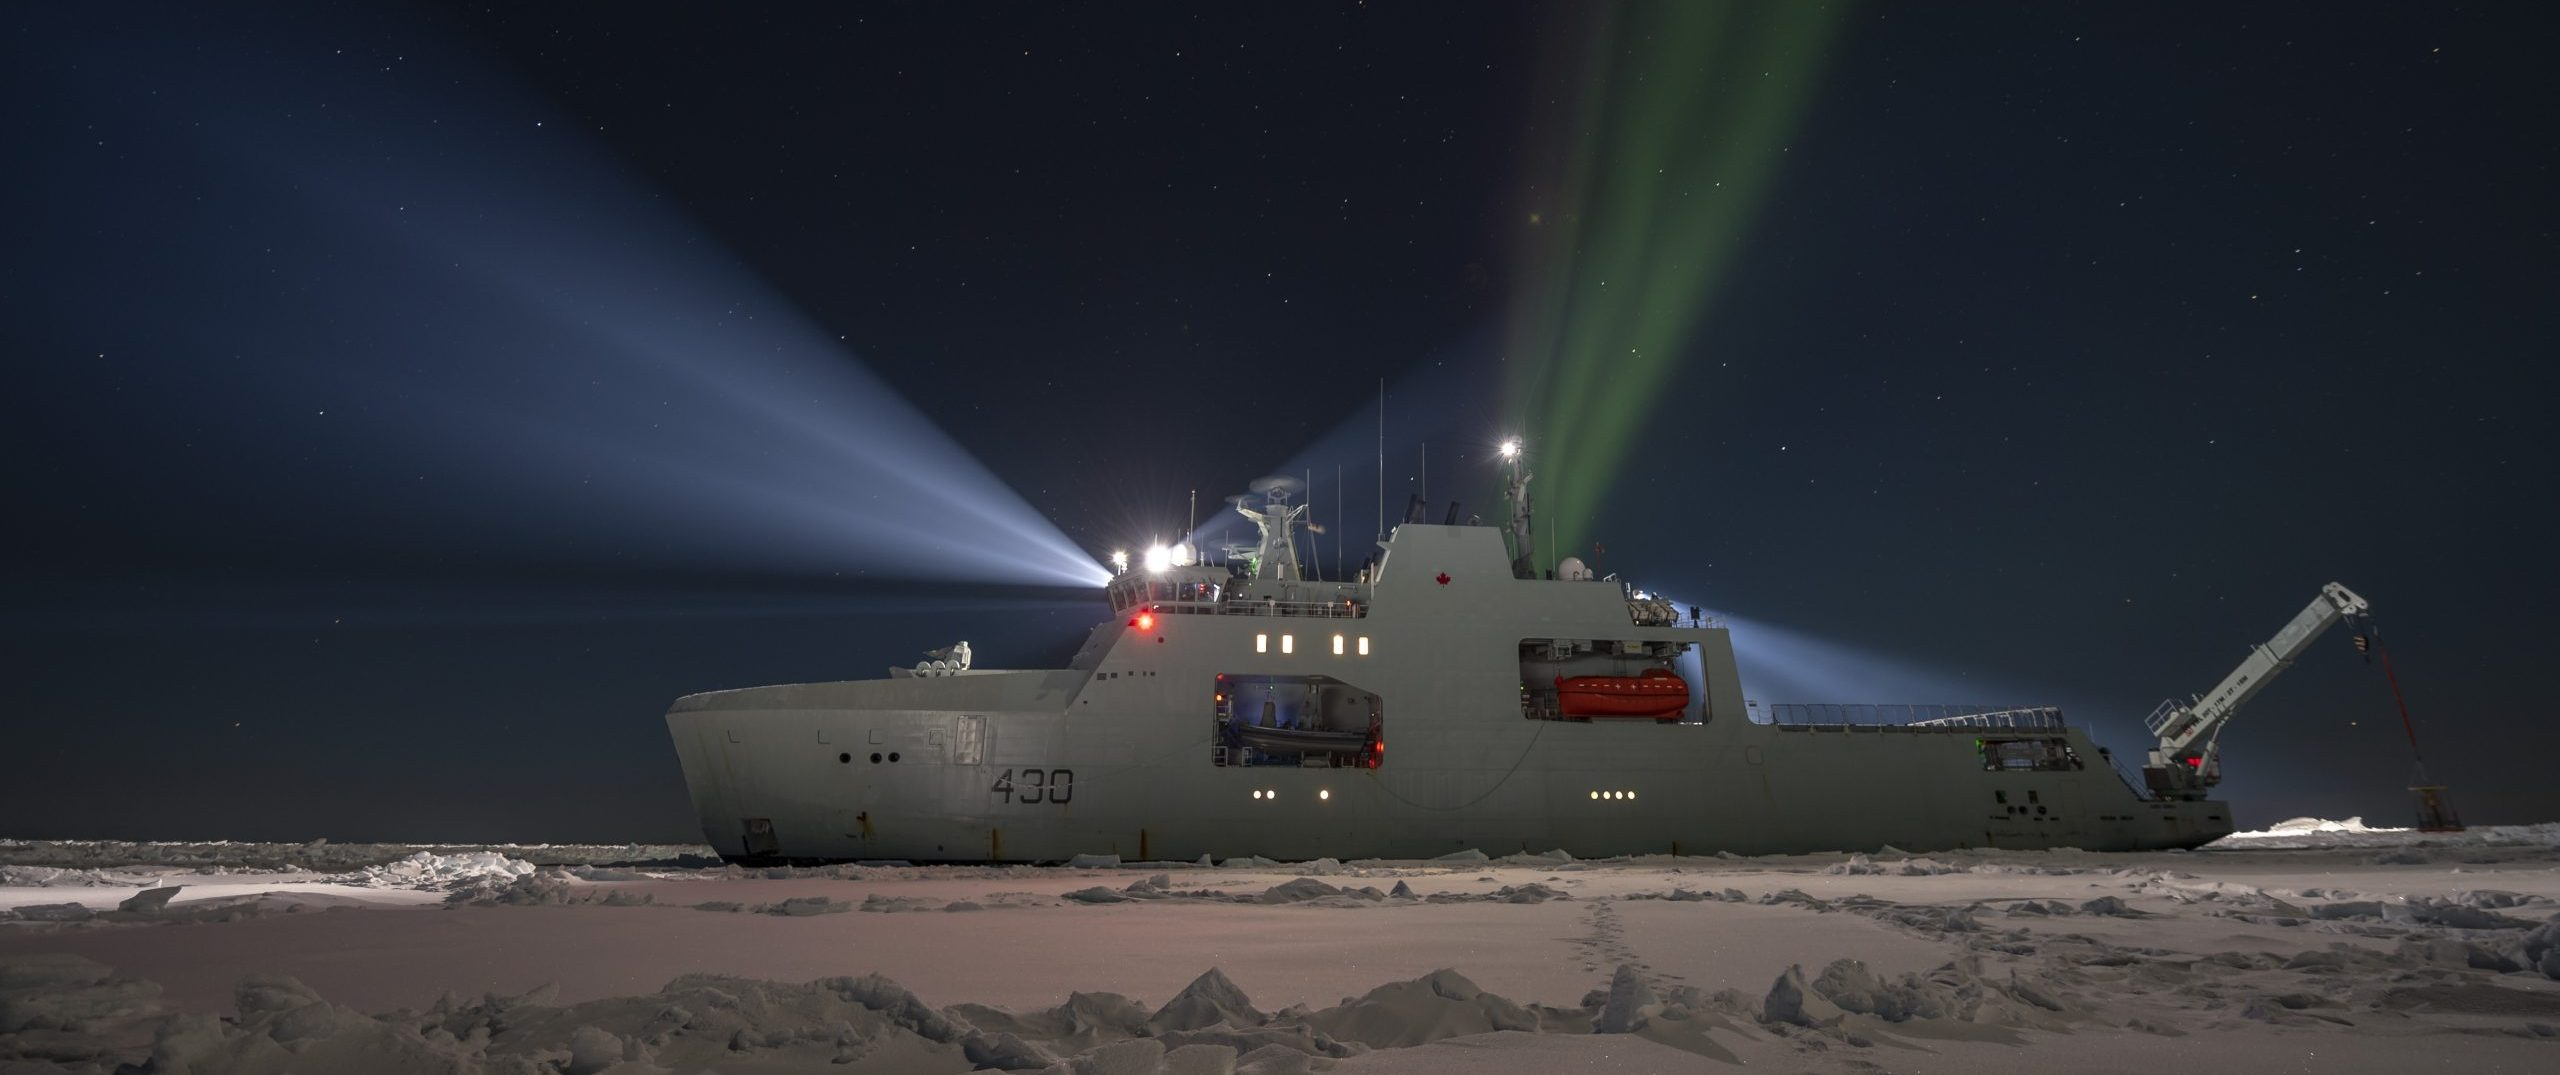 HMCS Harry Dewolf in ice trials